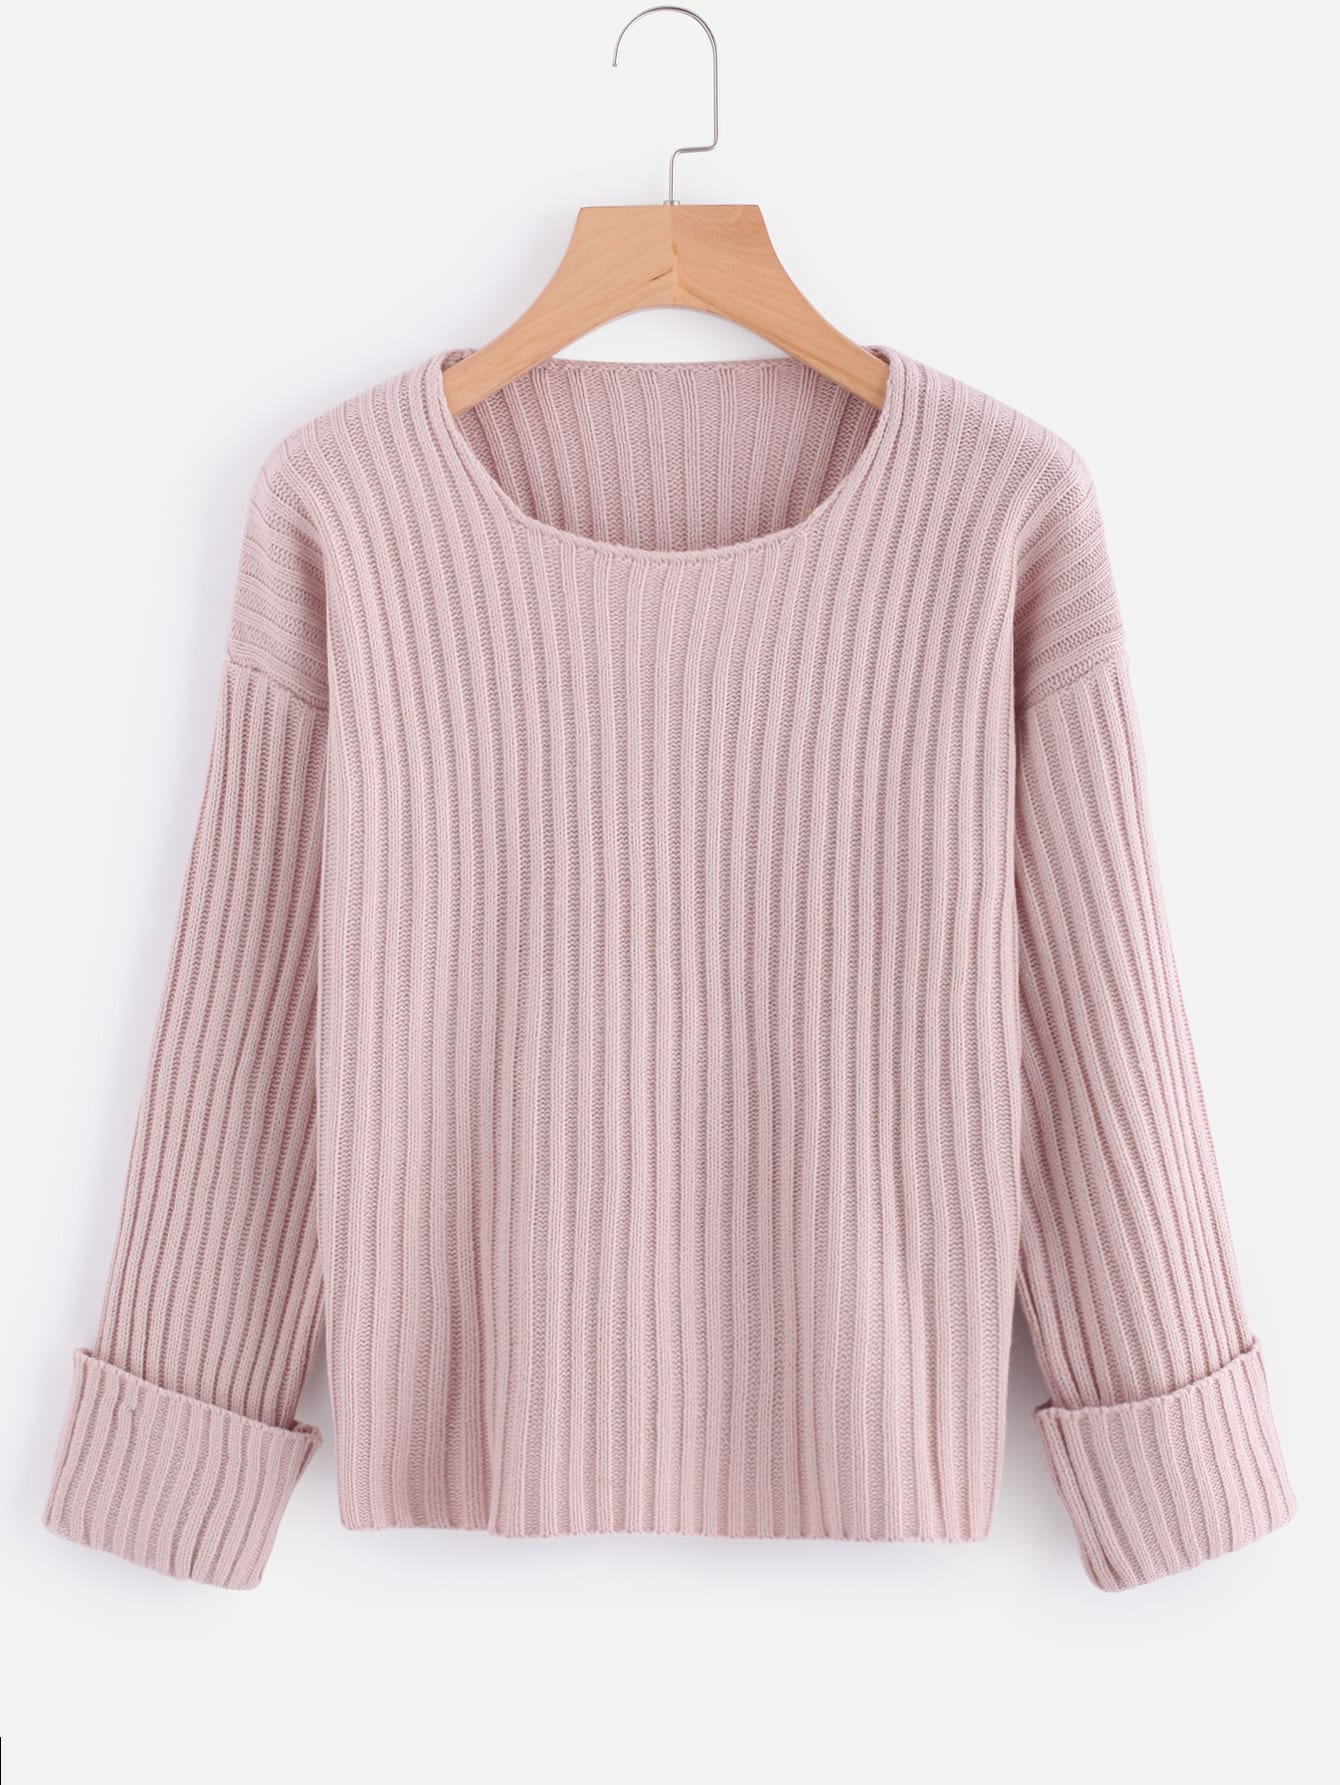 Rolled Cuff Ribbed Sweater sweater170915114